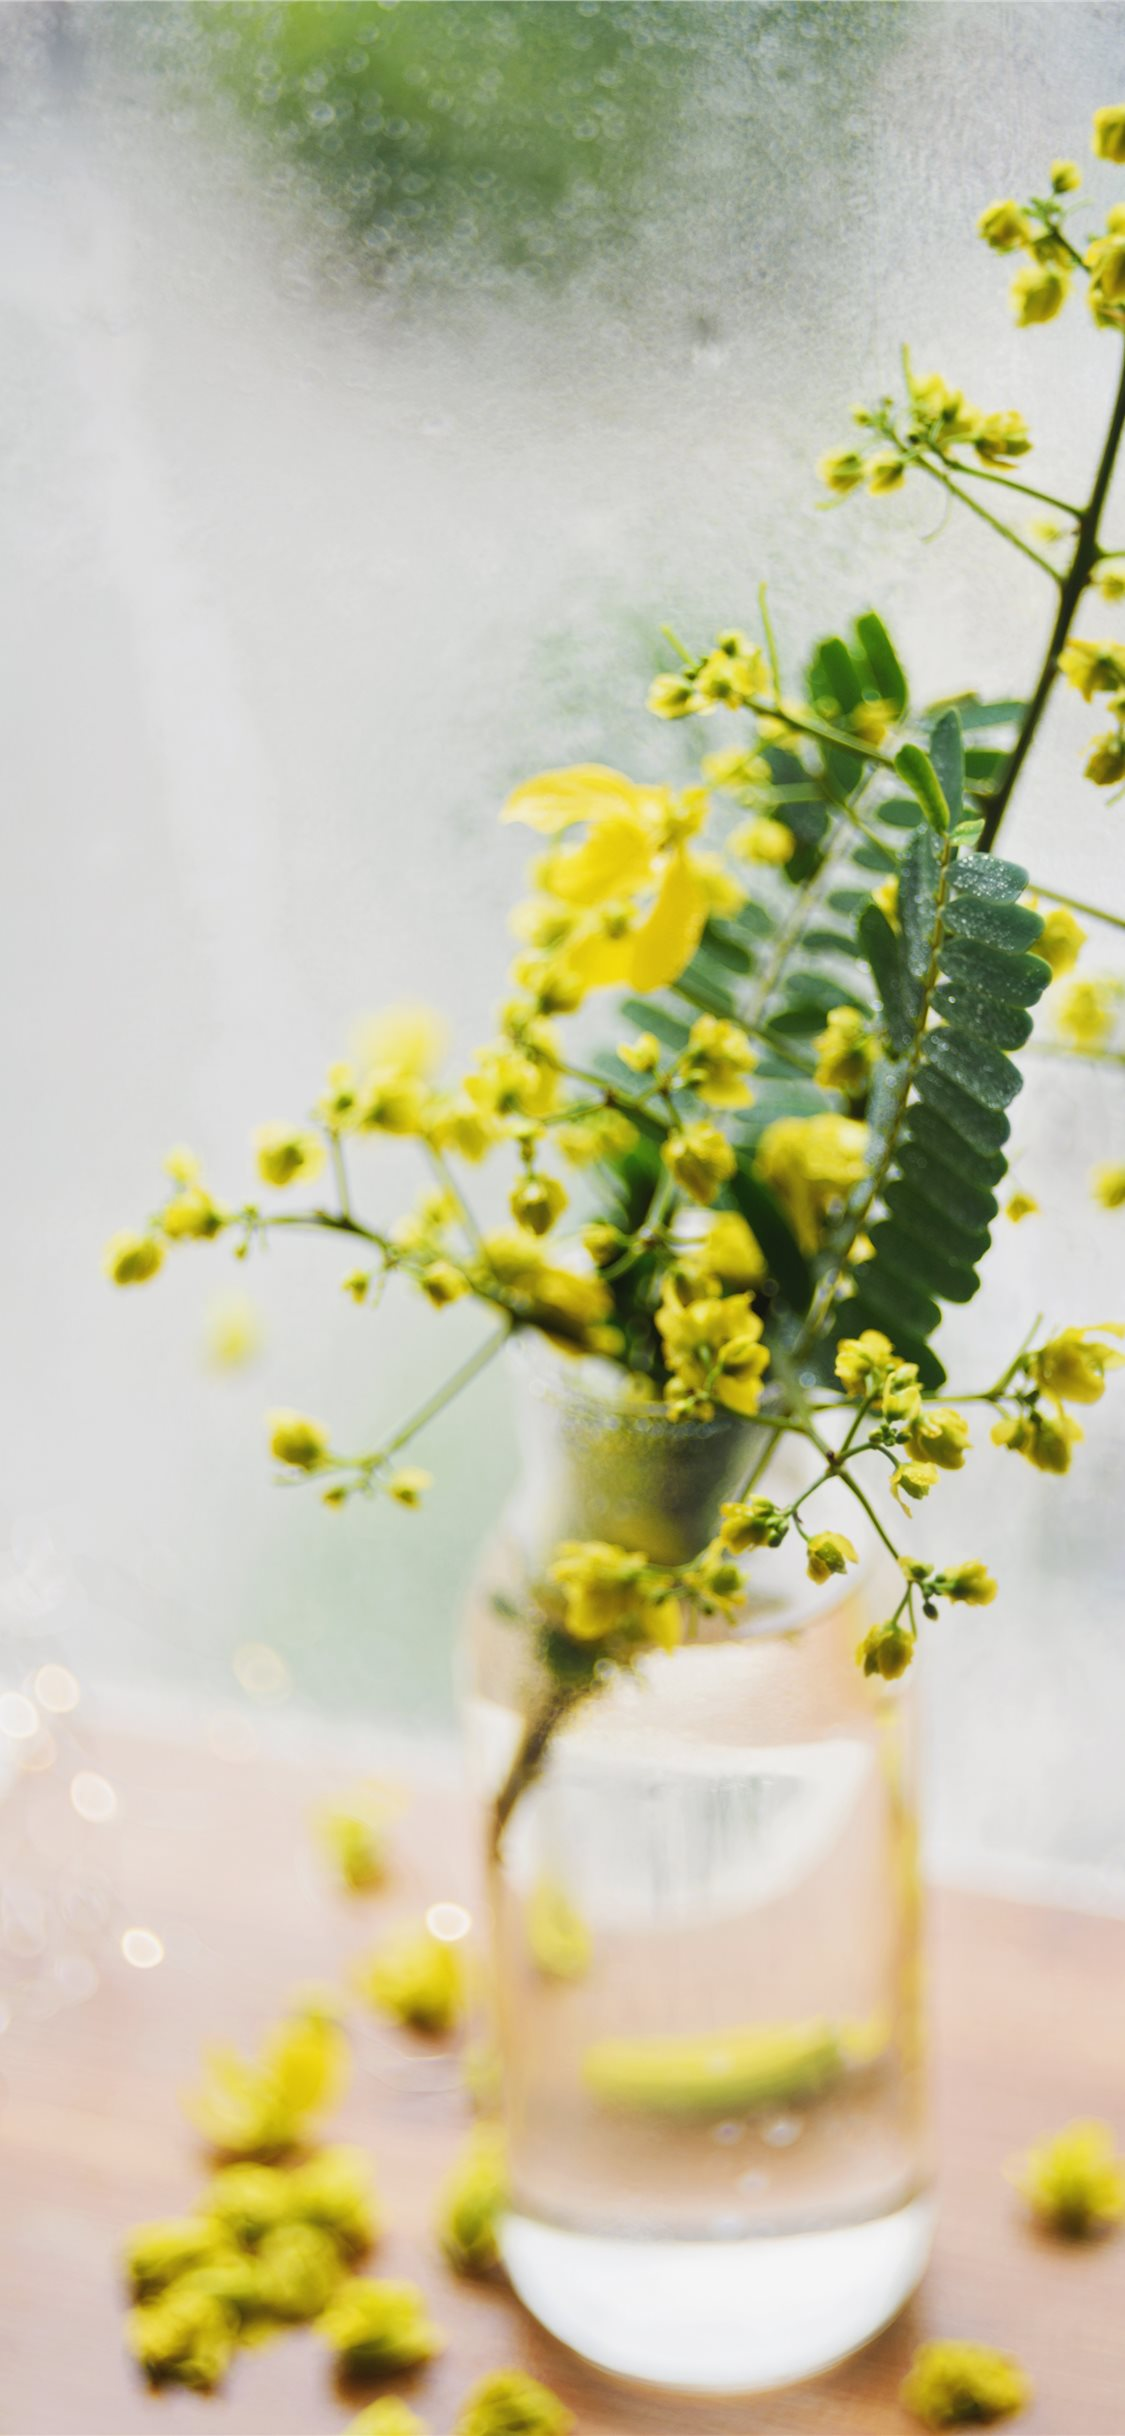 Still Life With Yellow Wild Flowers In A Vase Iphone X Wallpapers Free Download